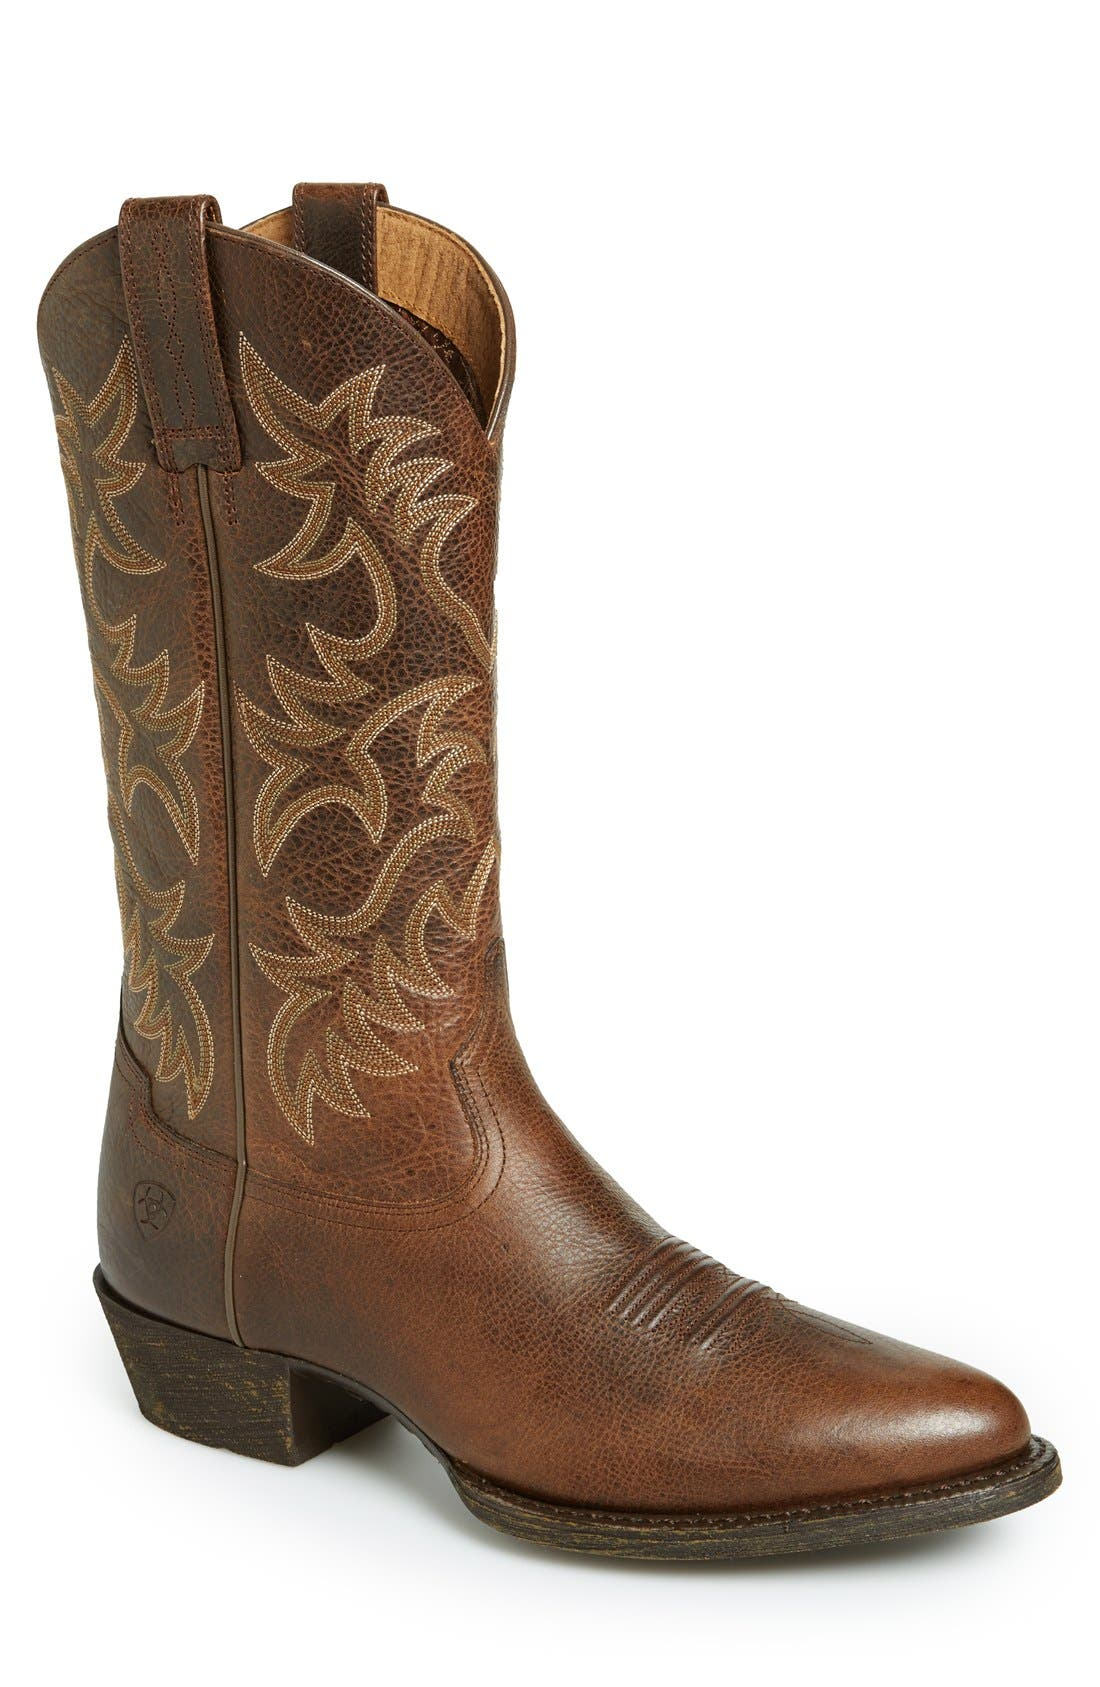 Alternate Image 1 Selected - Ariat 'Heritage R-Toe' Leather Cowboy Boot (Men)